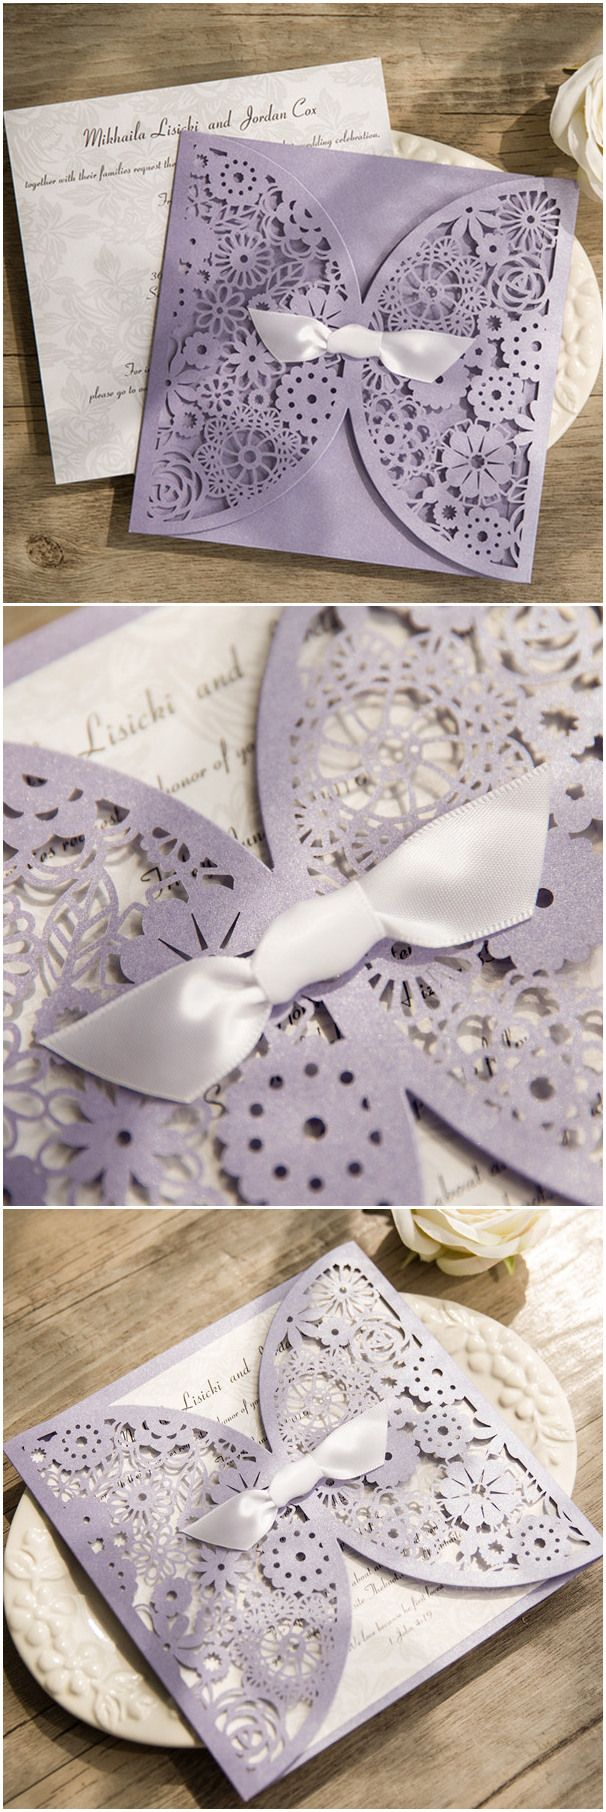 38 Best Lavender Wedding Ideas And Colors Images On Pinterest